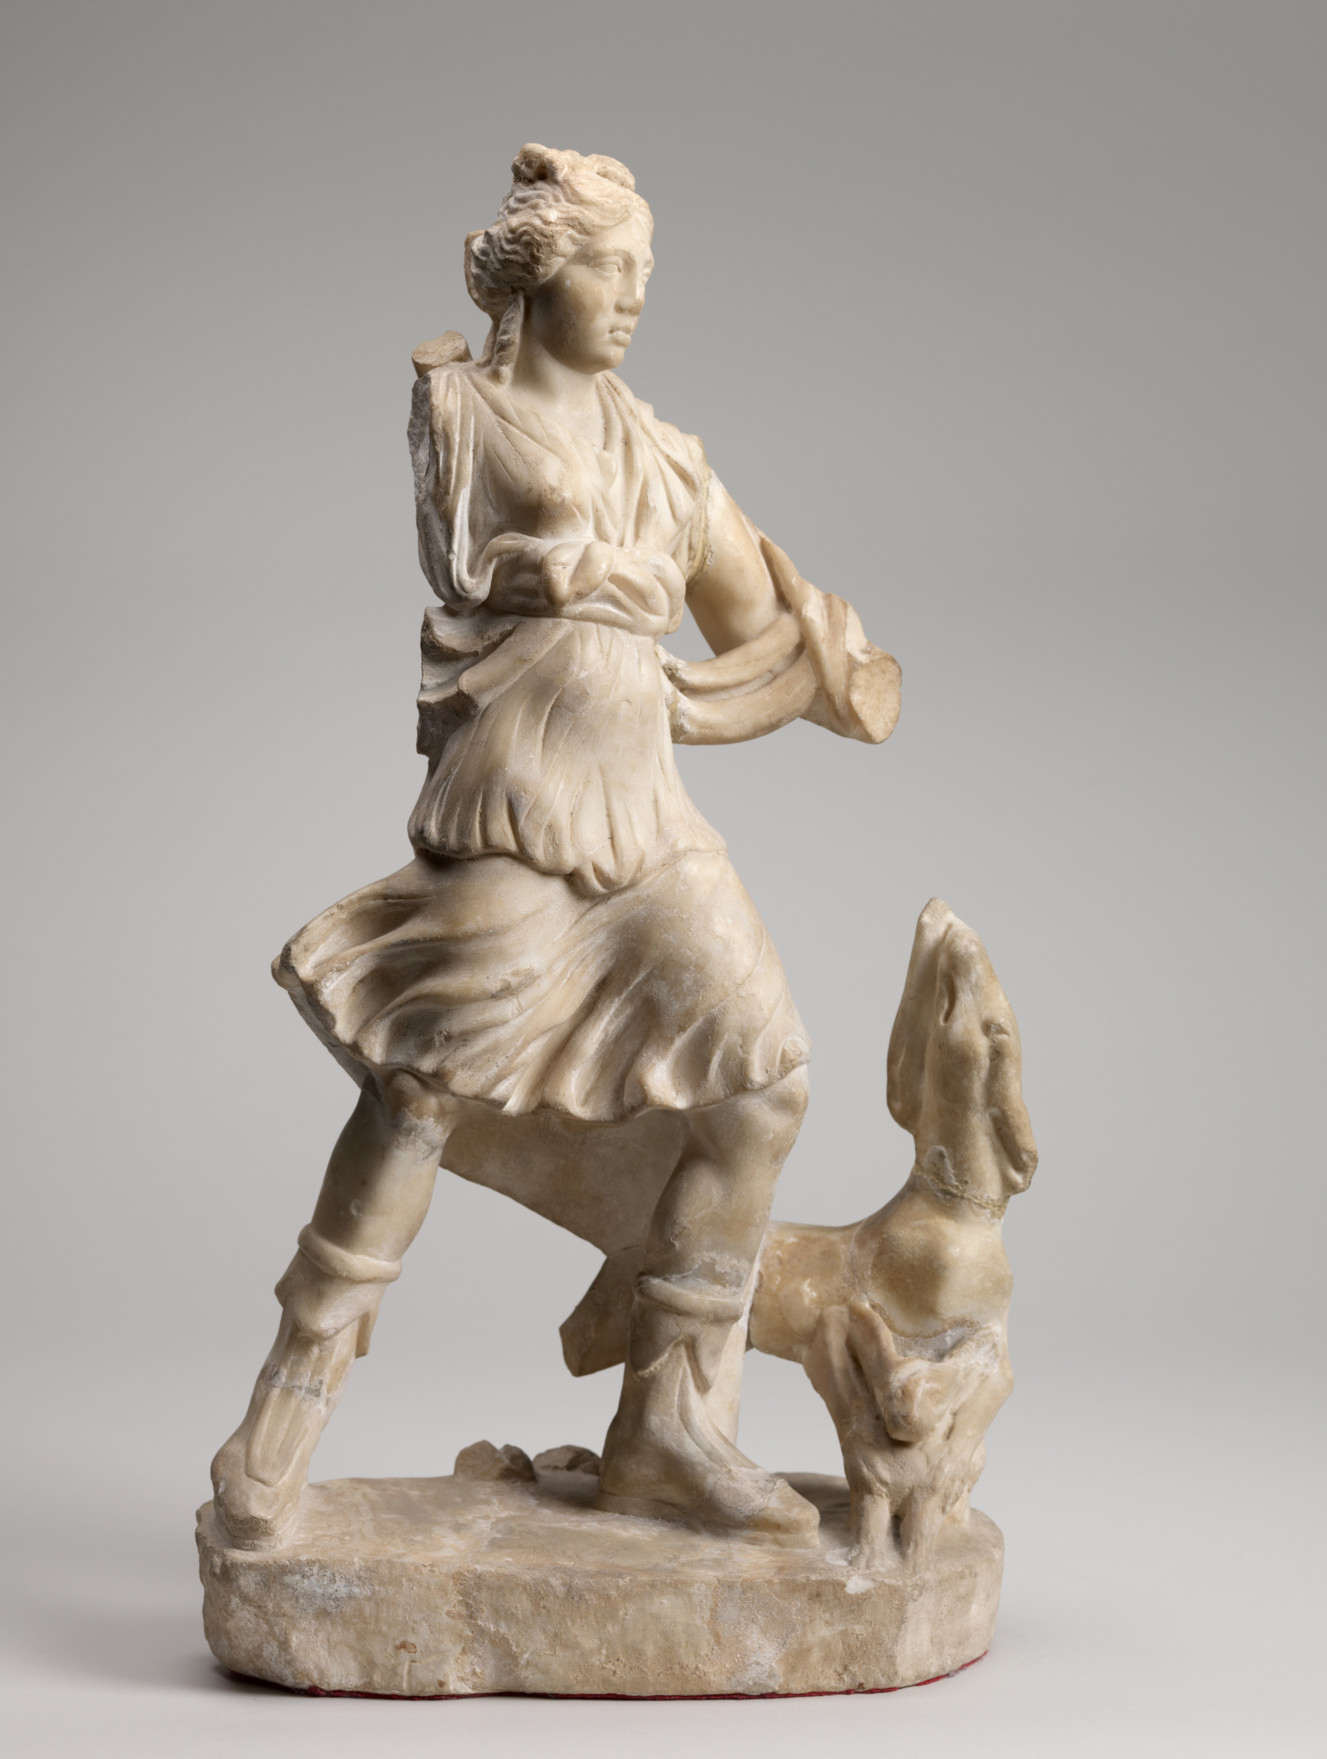 Roman, Artemis, 150-199 AD. Marble, 1 x 10 5/8 x 6 1/8 in. Gift of the son and daughters of Charles Bolles Bolles-Rogers, Class of 1907: Frederick Van D. Rogers, Mary Rogers Savage, and Nancy Rogers Pierson, 76.37.28.